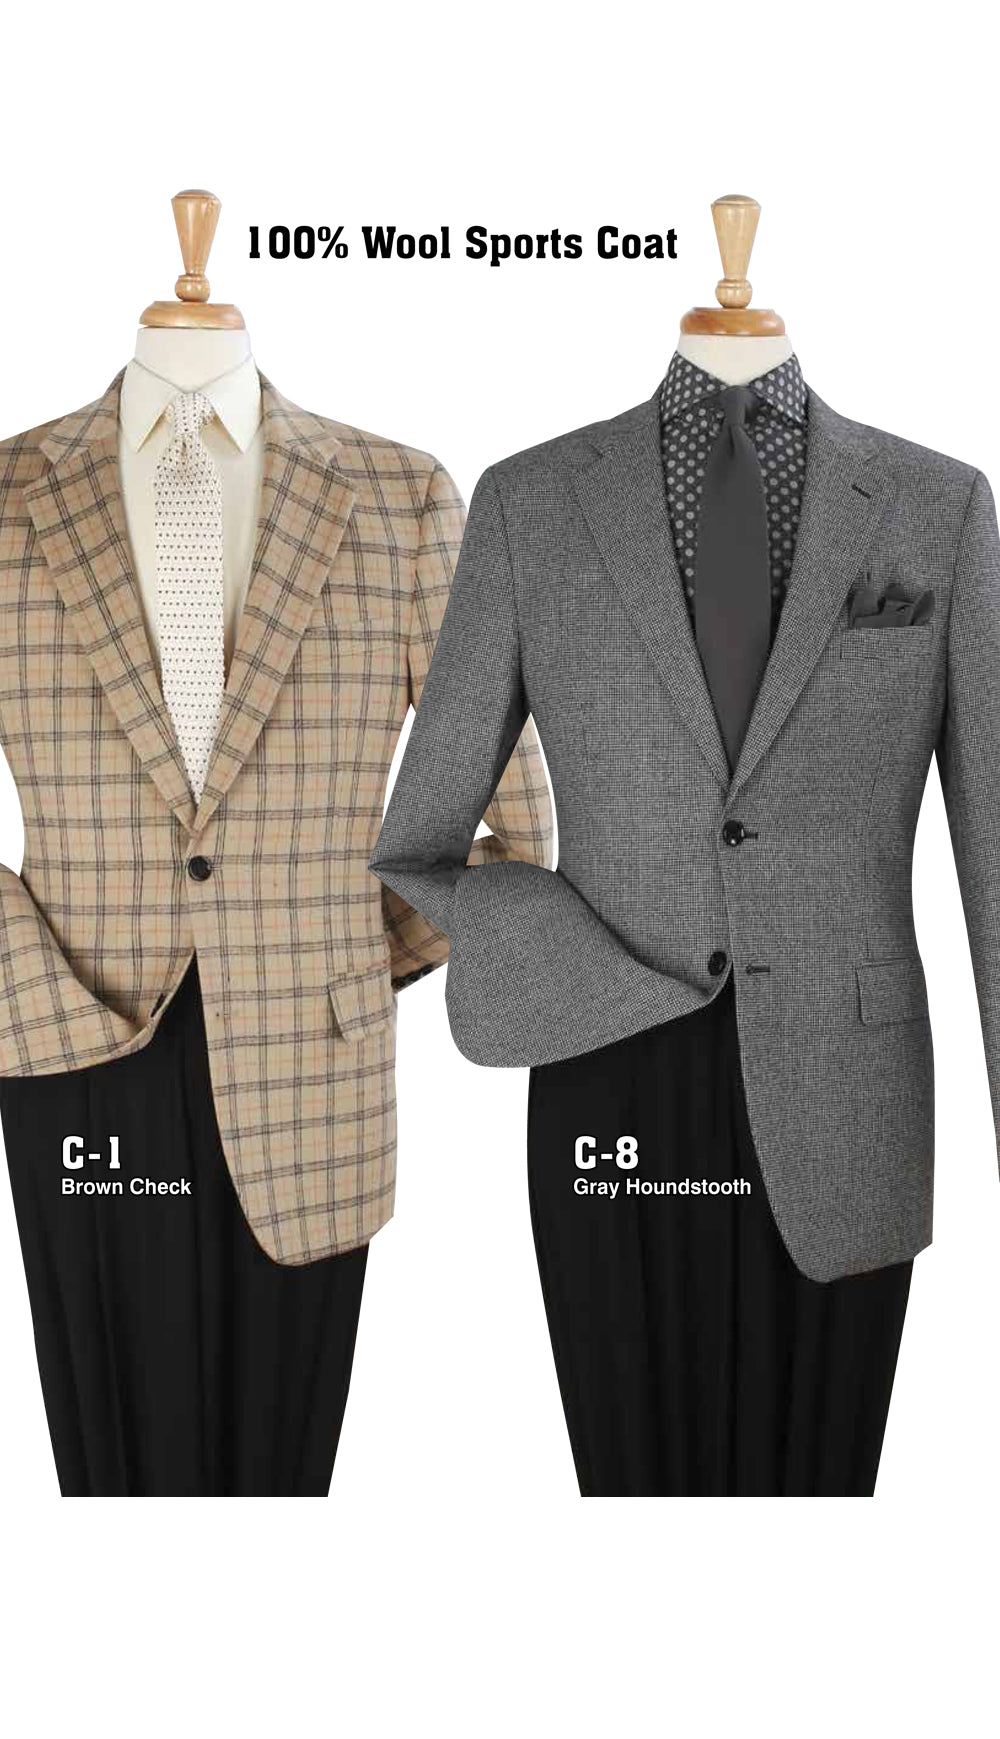 Men's High Fashion Sport Coat C-1